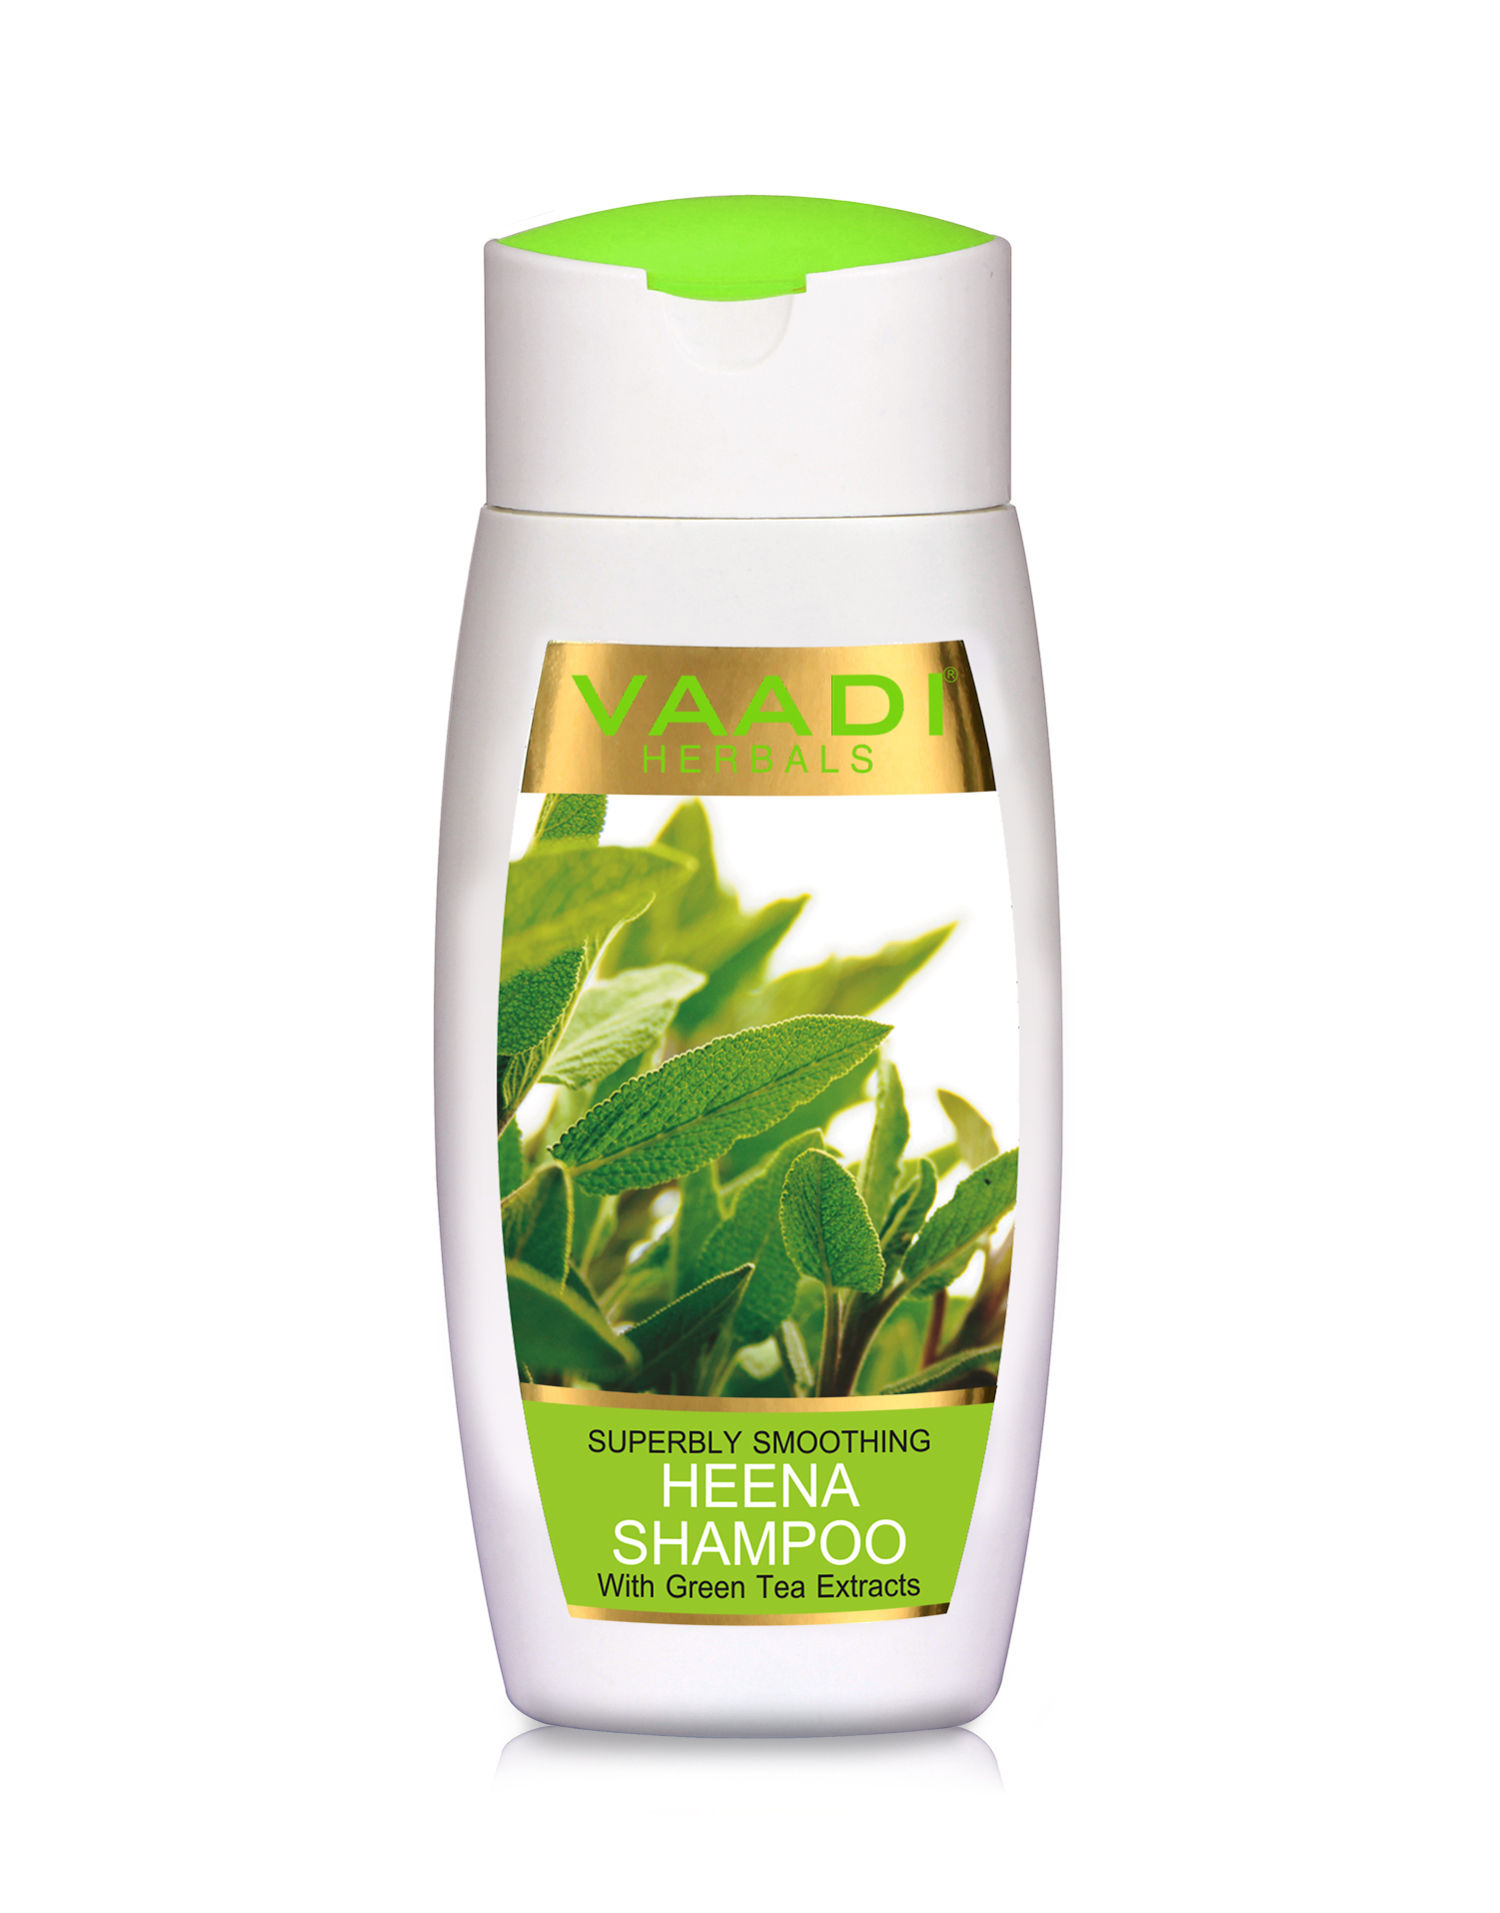 Vaadi Herbals With Green Tea Extracts Superbly Smoothing Heena Shampoo 110ml